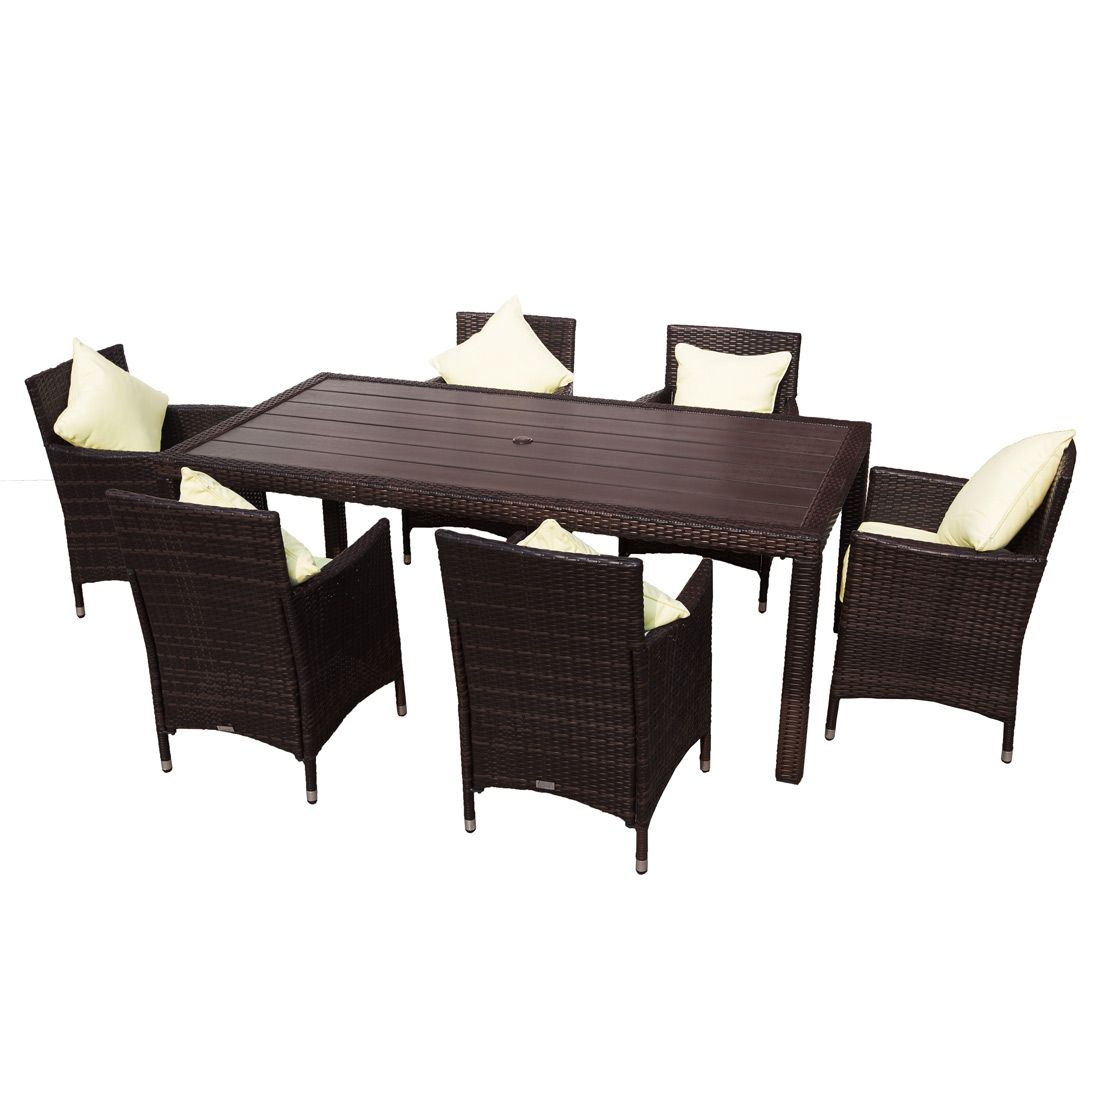 Buy morocco 7 piece pe wicker outdoor dining set brown with faux timber table online